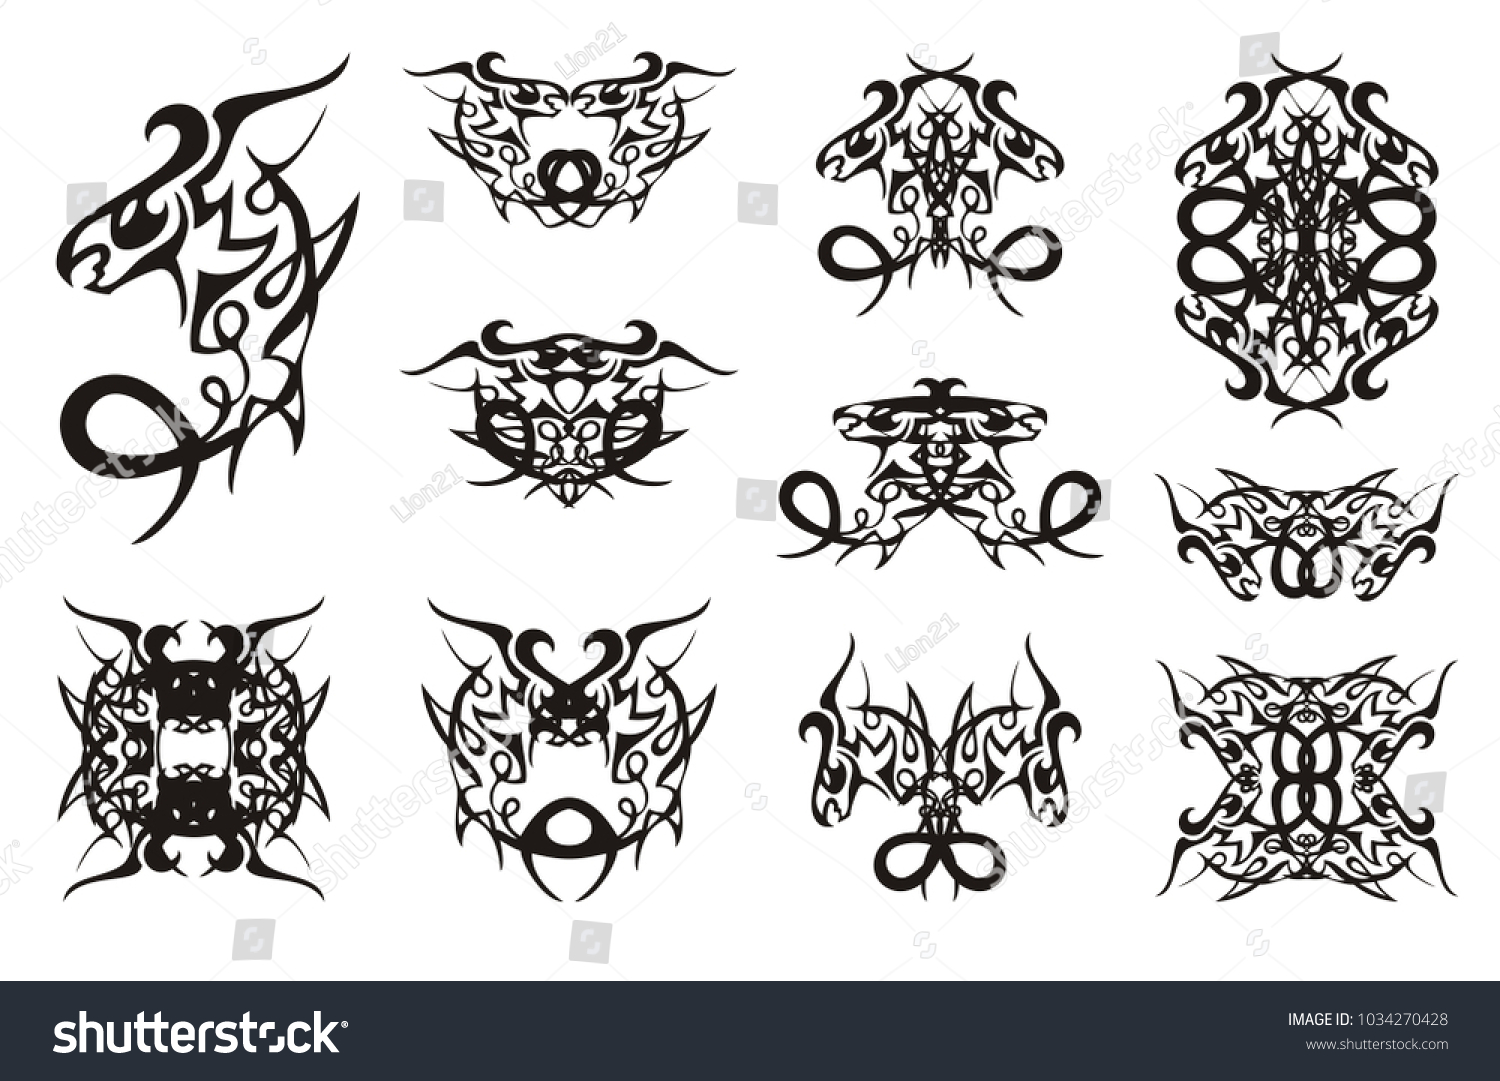 Freakish dragon symbols curls double symbols stock vector freakish dragon symbols with curls double symbols of the young coiling peaked dragon for your buycottarizona Gallery